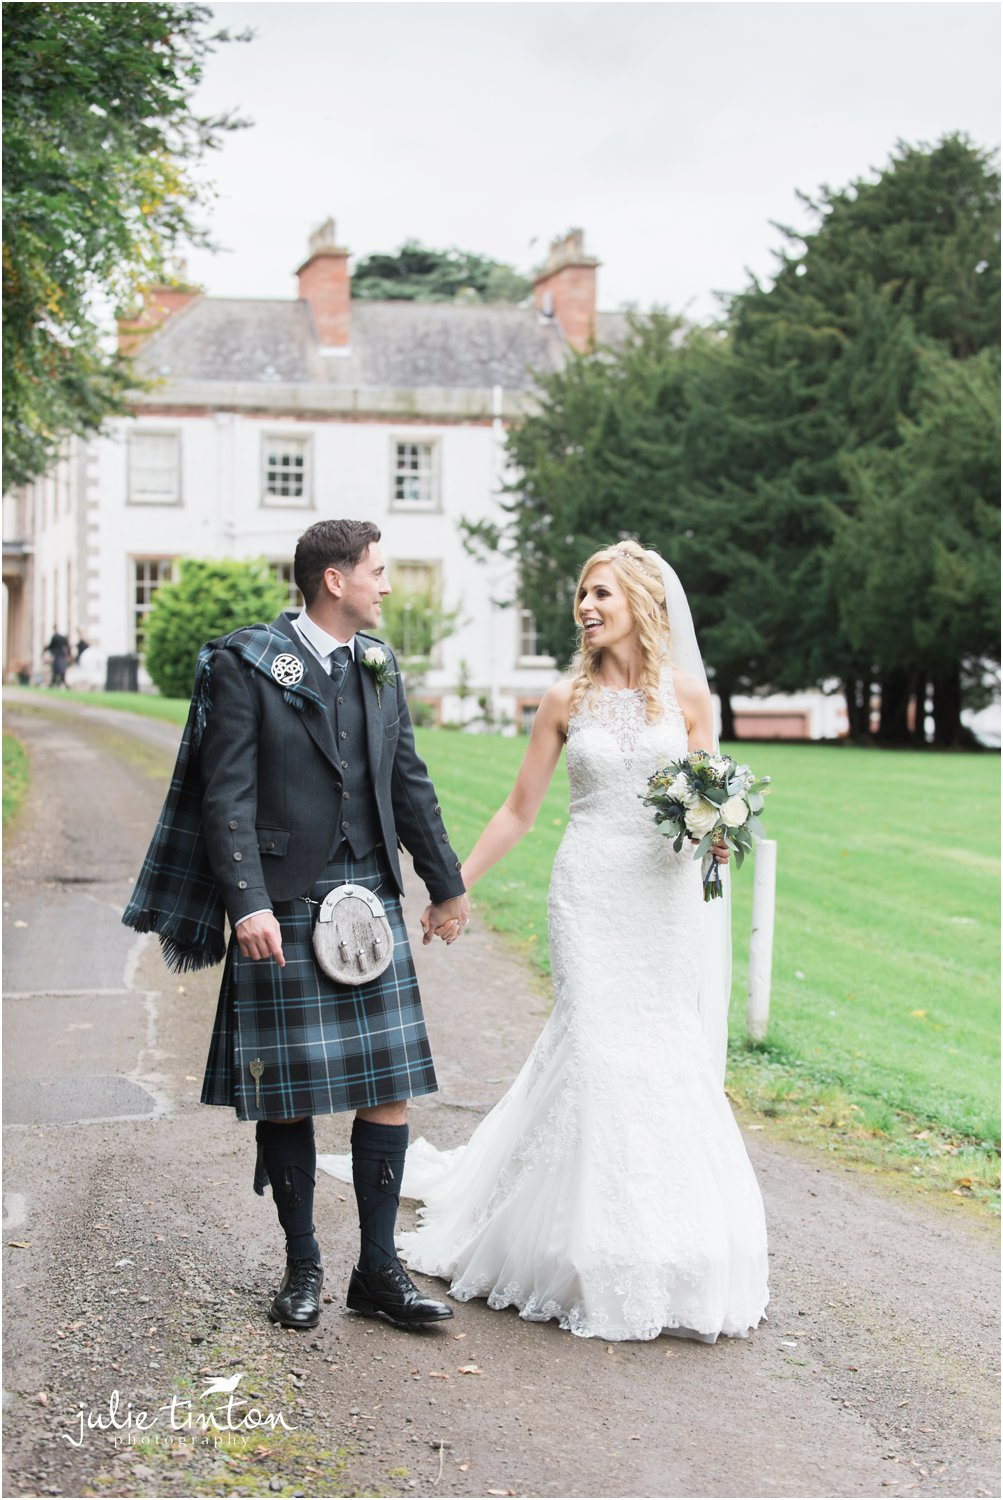 Bride and groom walking with Broxmouth Park House in the background